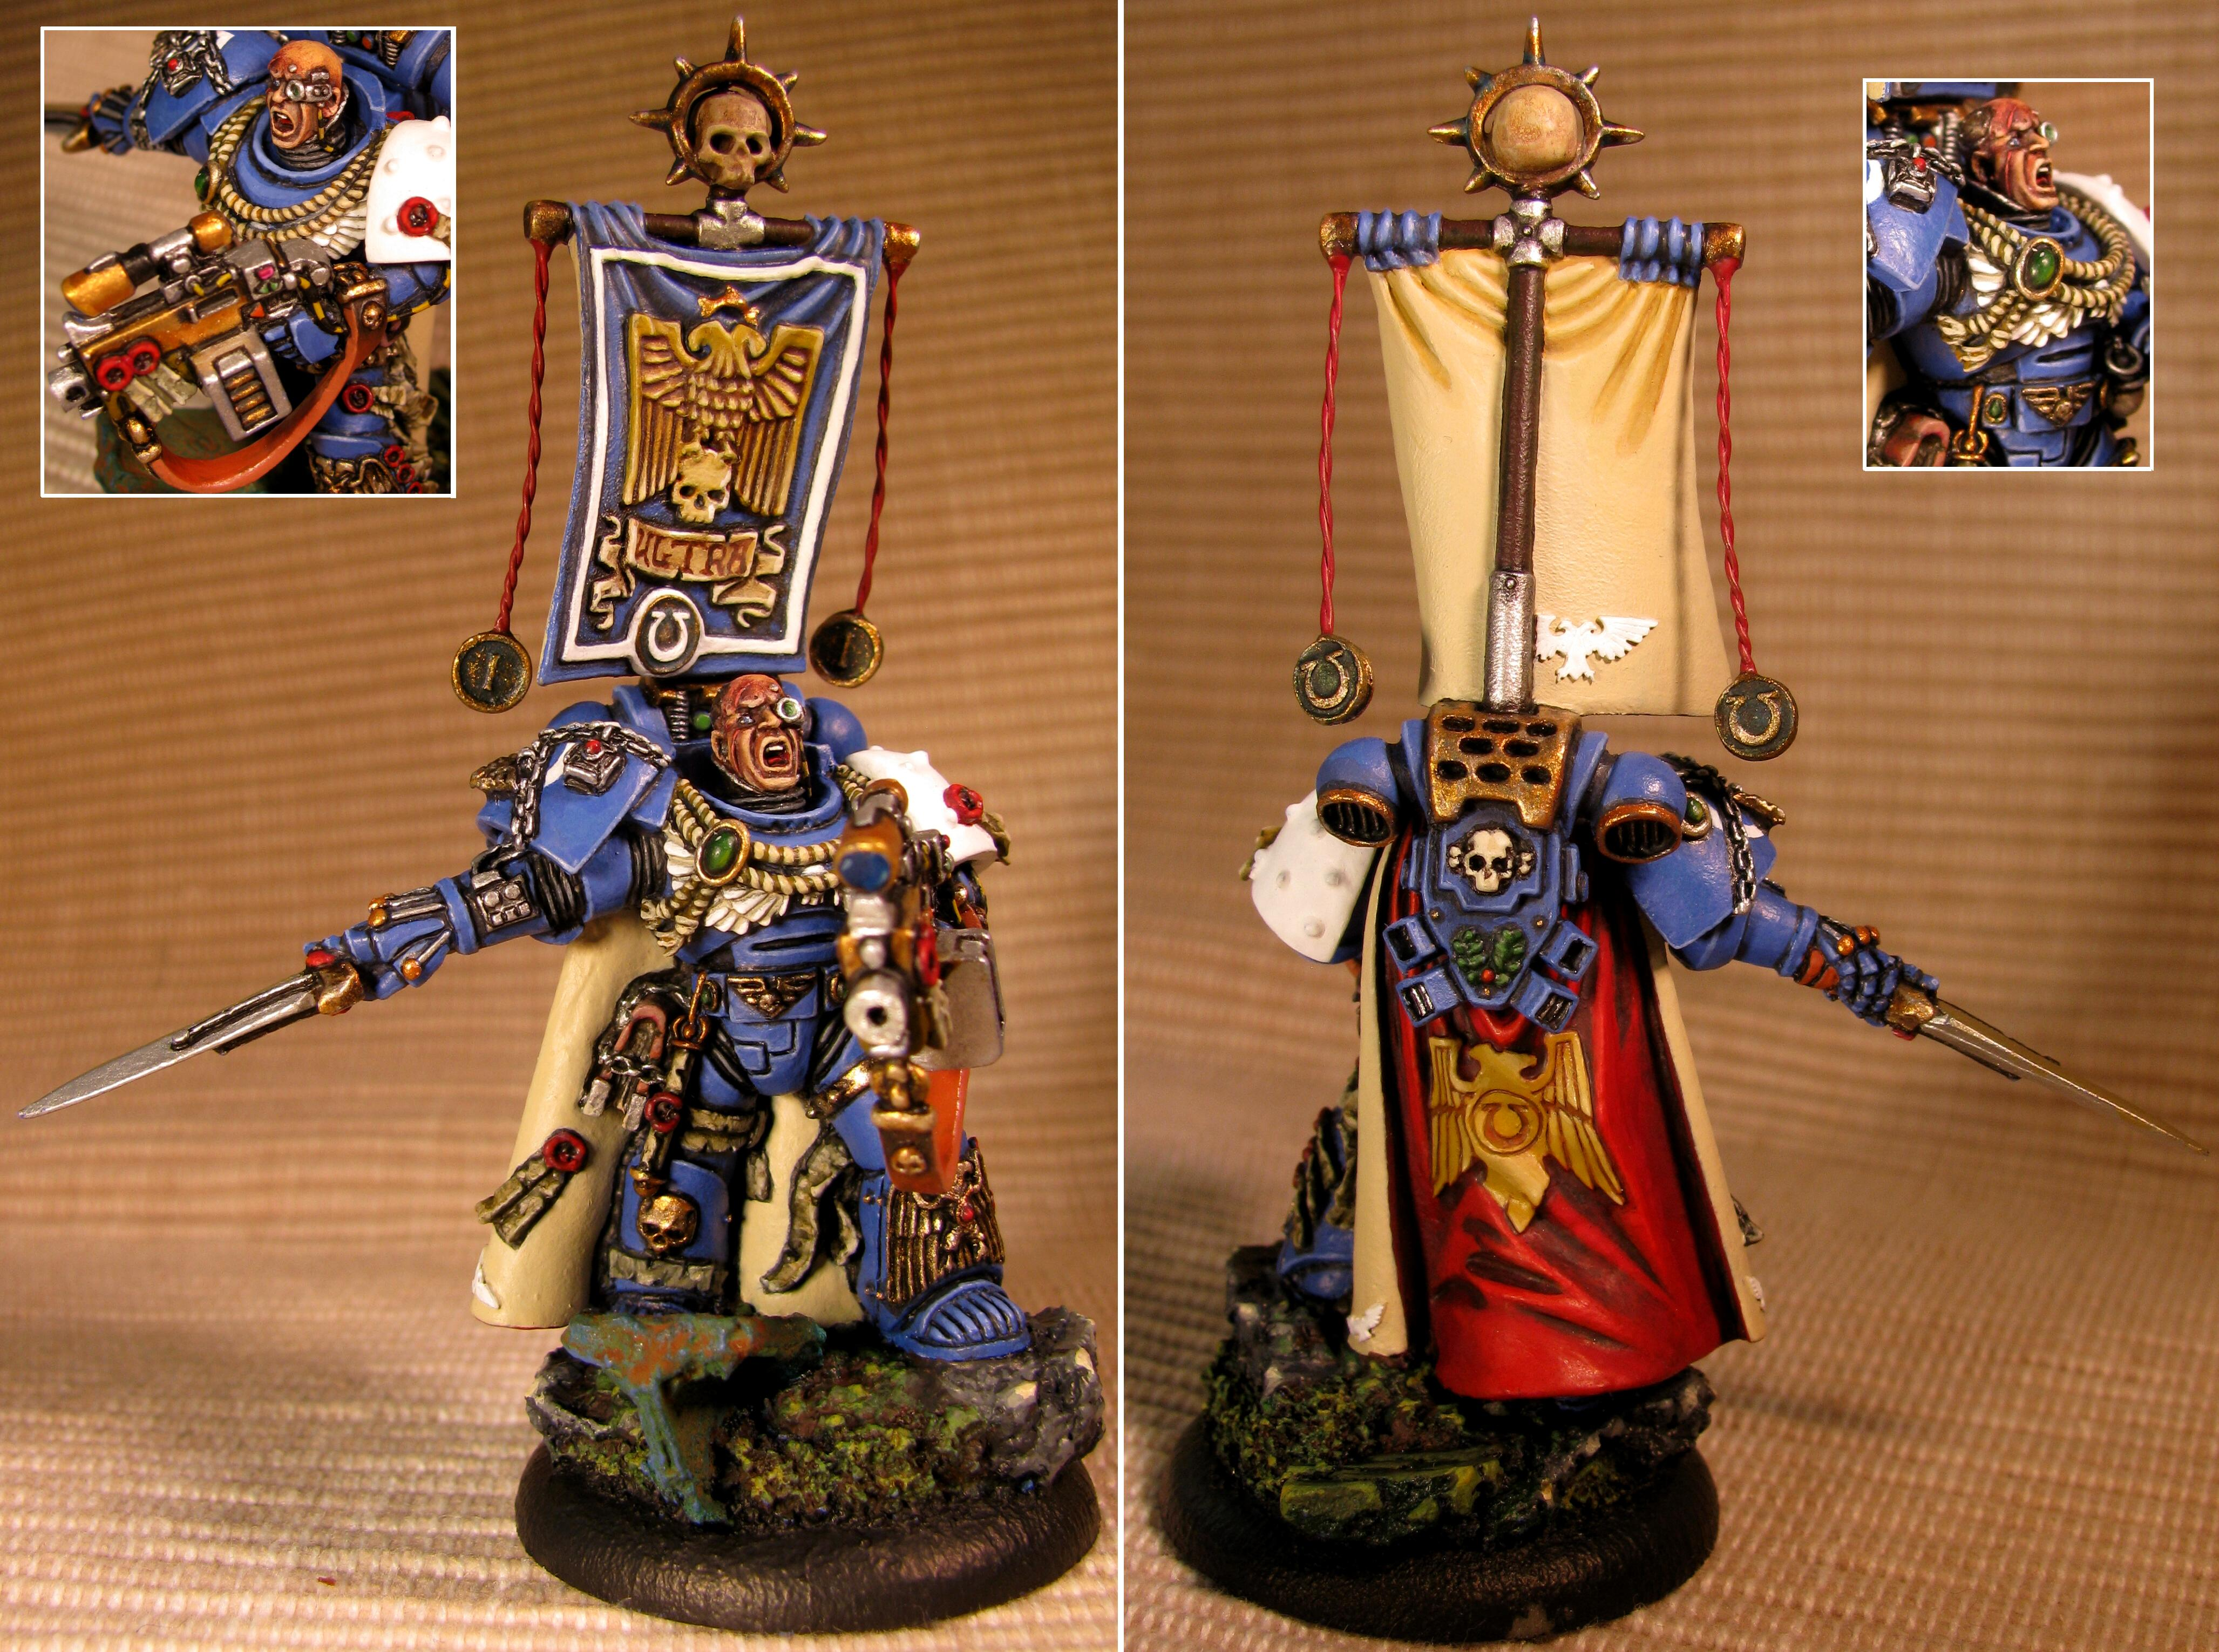 1st Company, Agemman, Aquila, Assault On Black Reach, Banner, Base, Bolter, Captain, Conversion, Custom, Etched Brass, Face, First Company, Forge World, Gem, Master Of Recruits, Power Sword, Recruits, Ruby, Space Marines, Sword, Ultramarines, Warhammer 40,000, Warhammer Fantasy